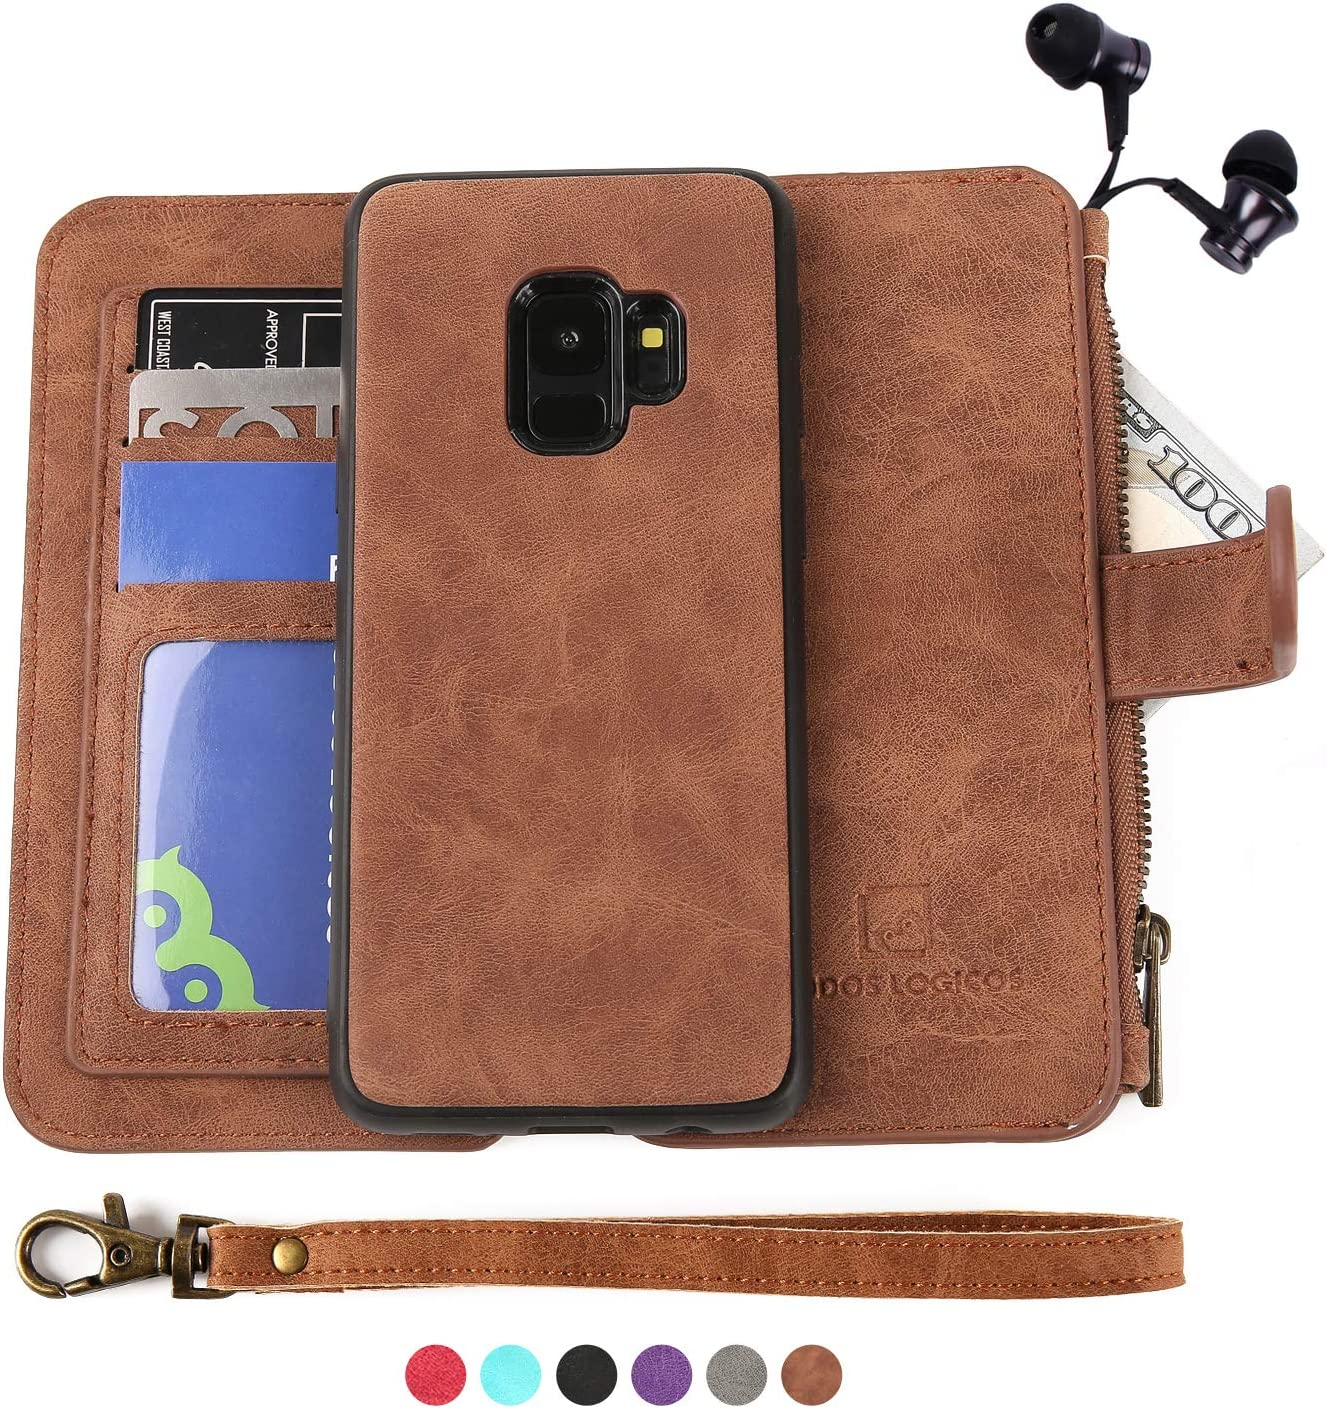 Samsung Galaxy S9 Plus Case, [Detachable Wallet Folio][2 in 1][Zipper Cash Storage][Up to 14 Card Slots 1 Photo Window] PU Leather Purse Clutch with Removable Inner Magnetic TPU Case - Brown